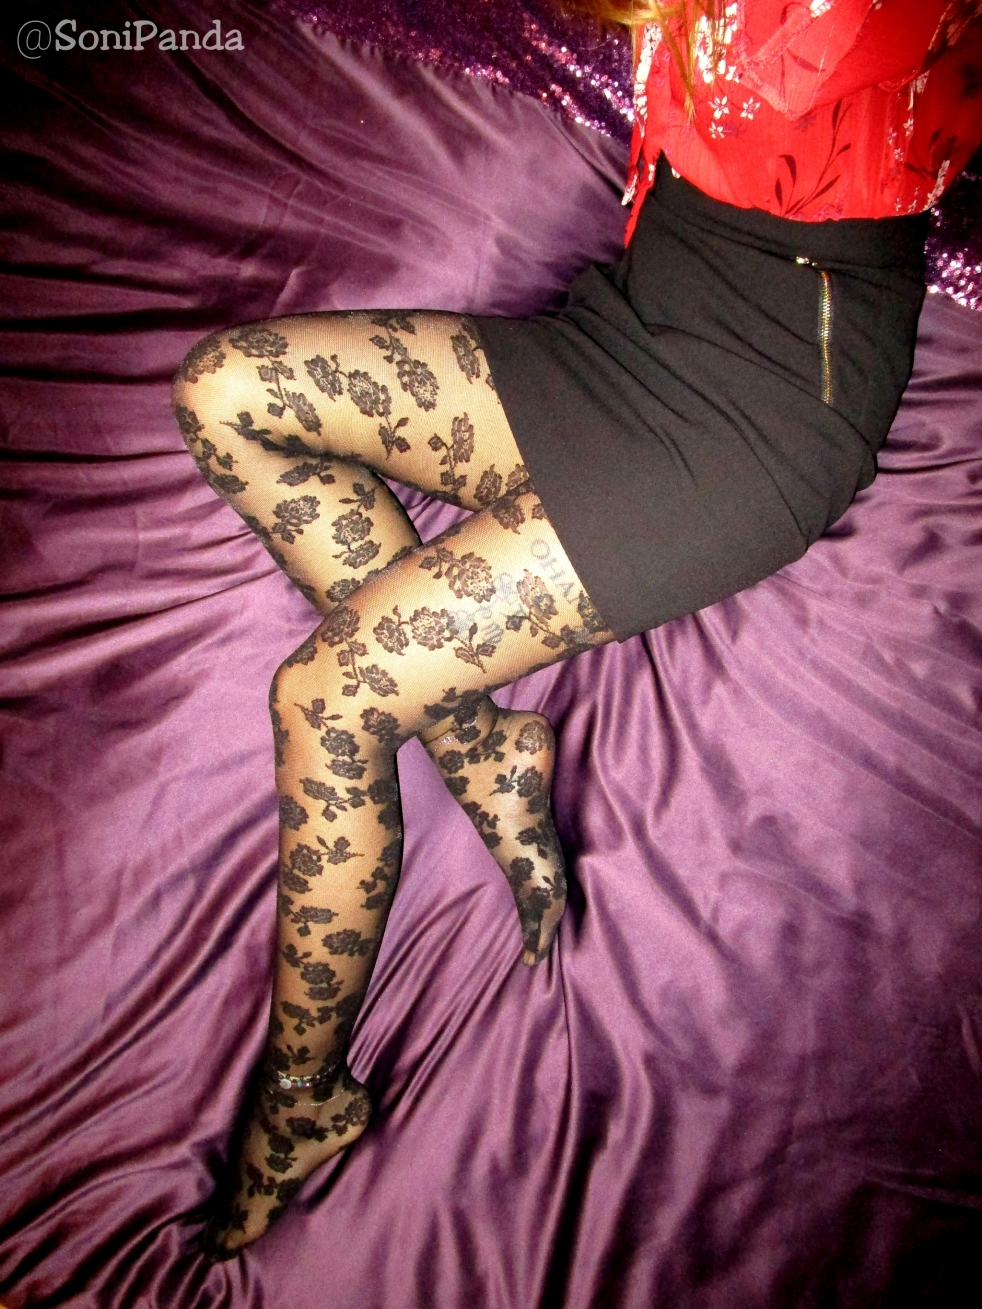 299c026ce82 Calzedonia Floral Patterned Total Shaper Tights – sonipandablog